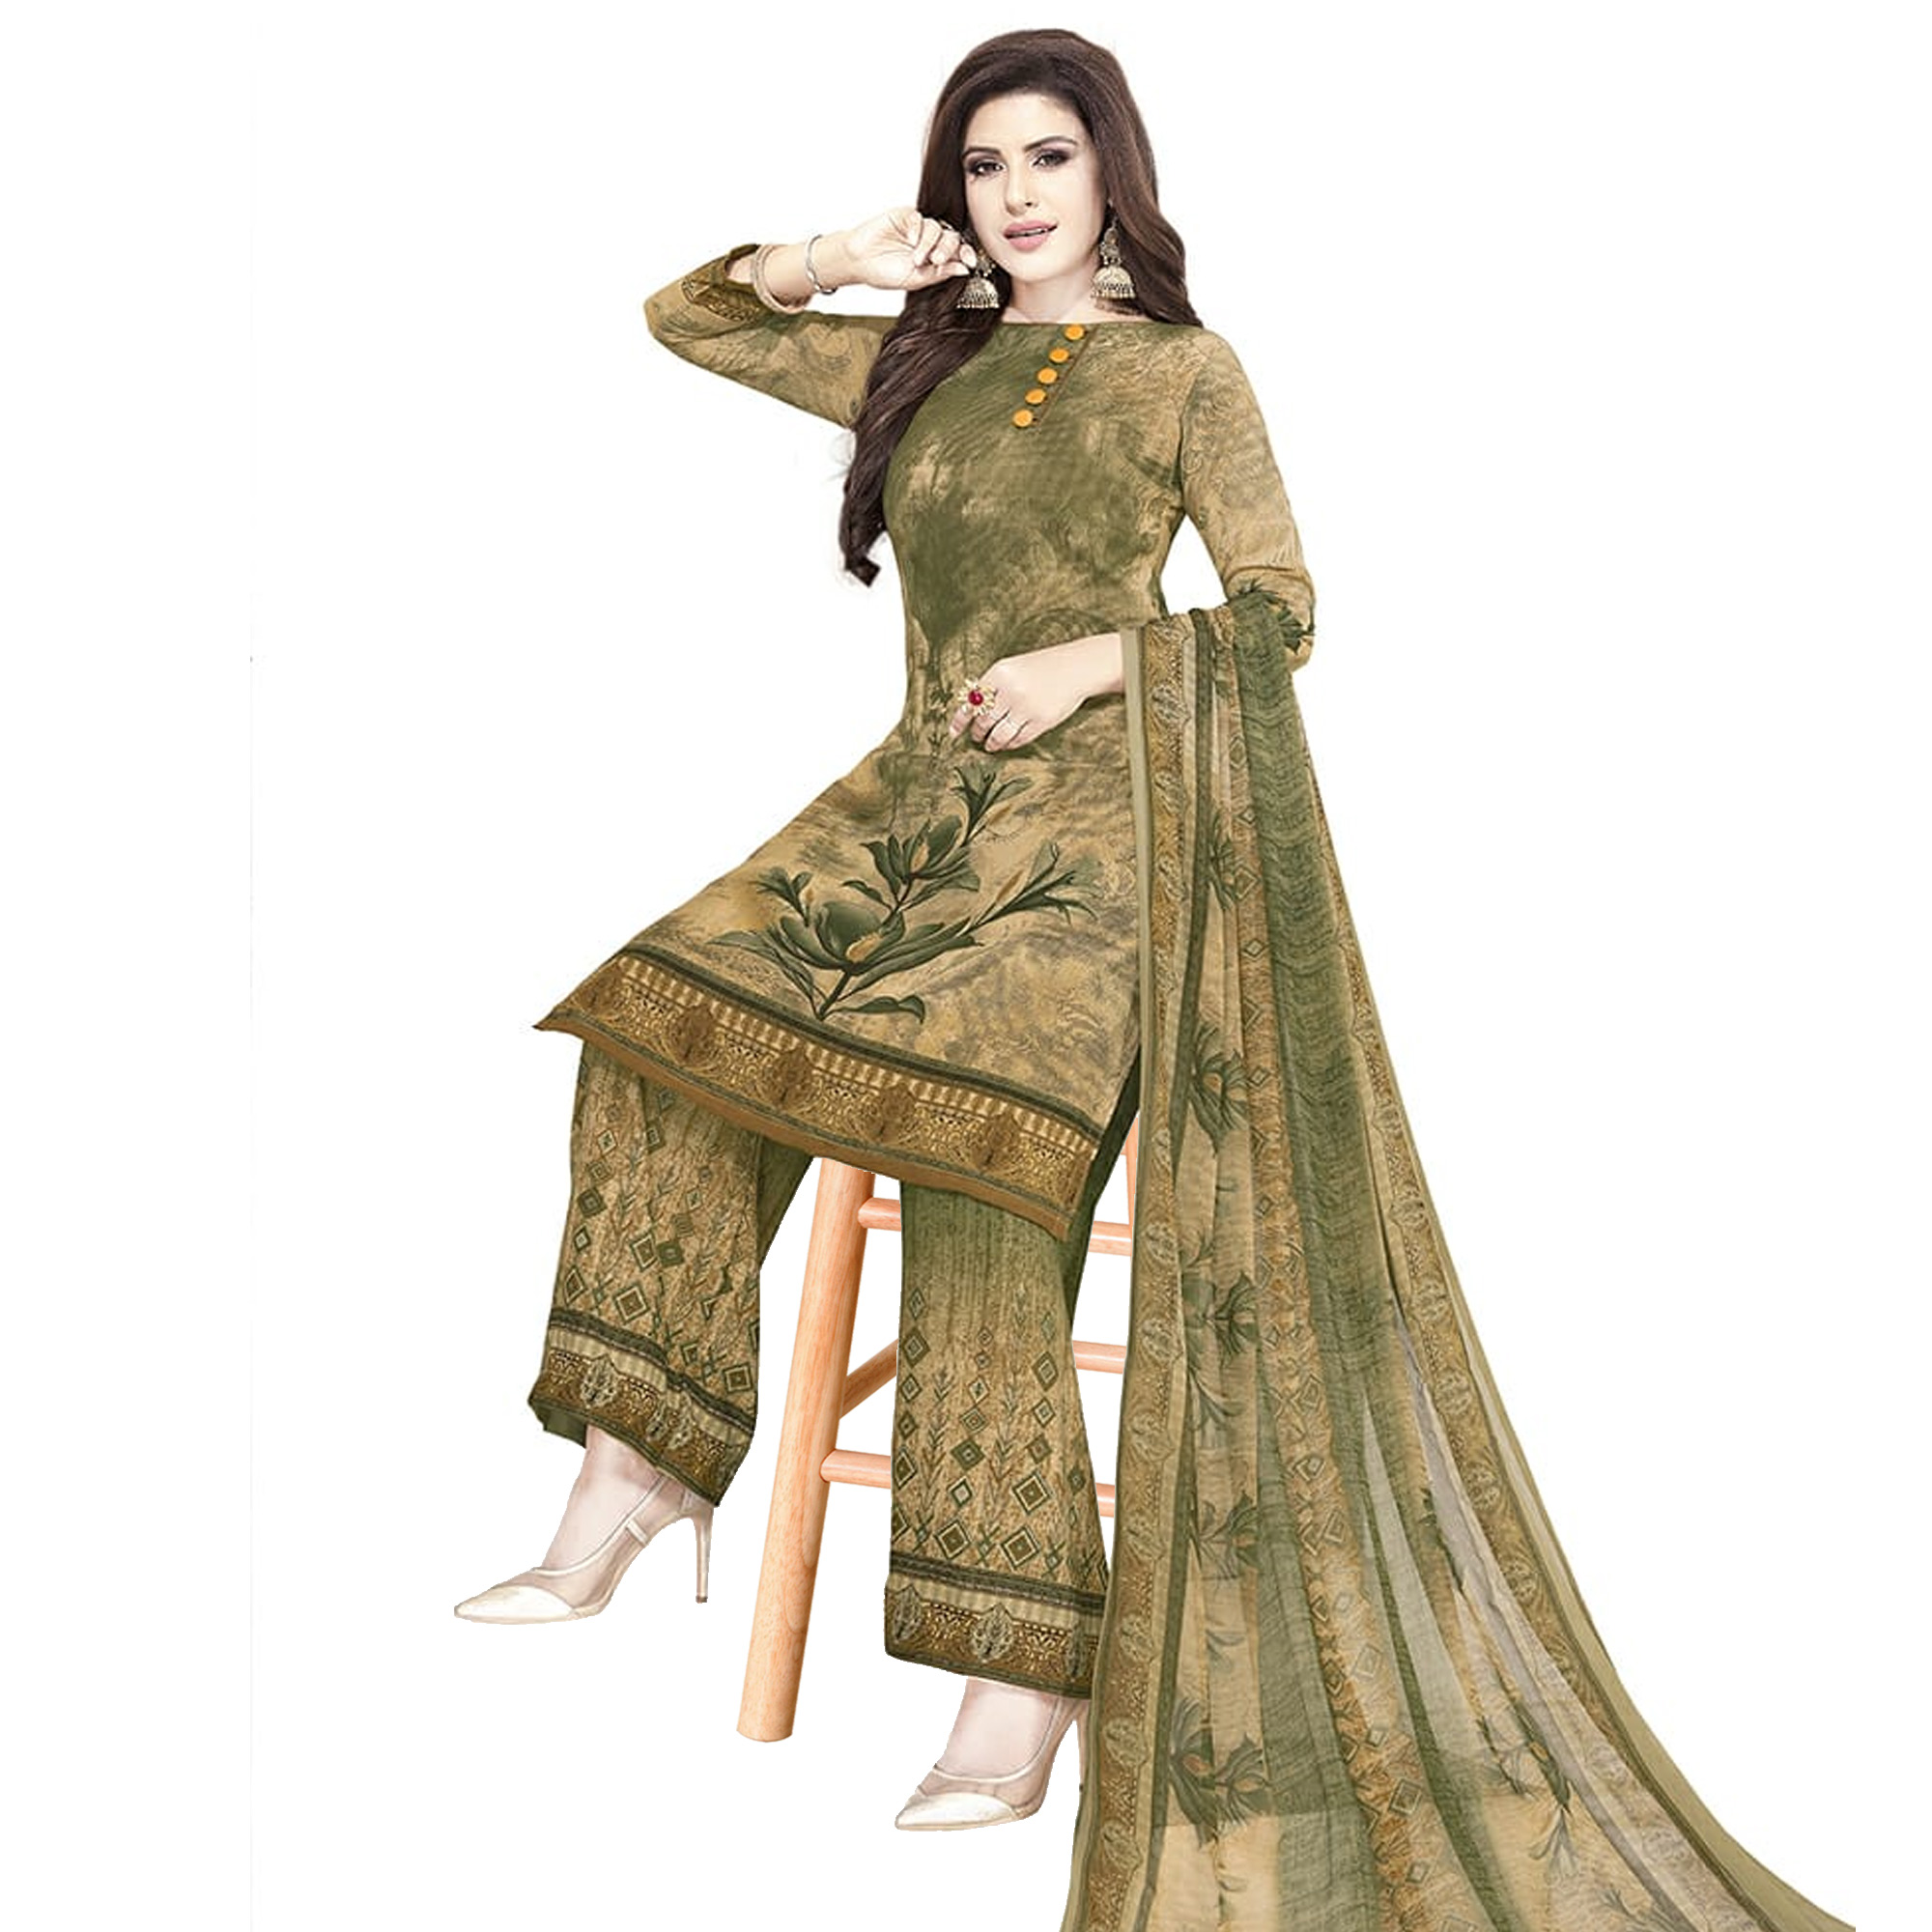 Mesmeric Beige-Olive Green Colored Casual Printed Crepe Dress Material